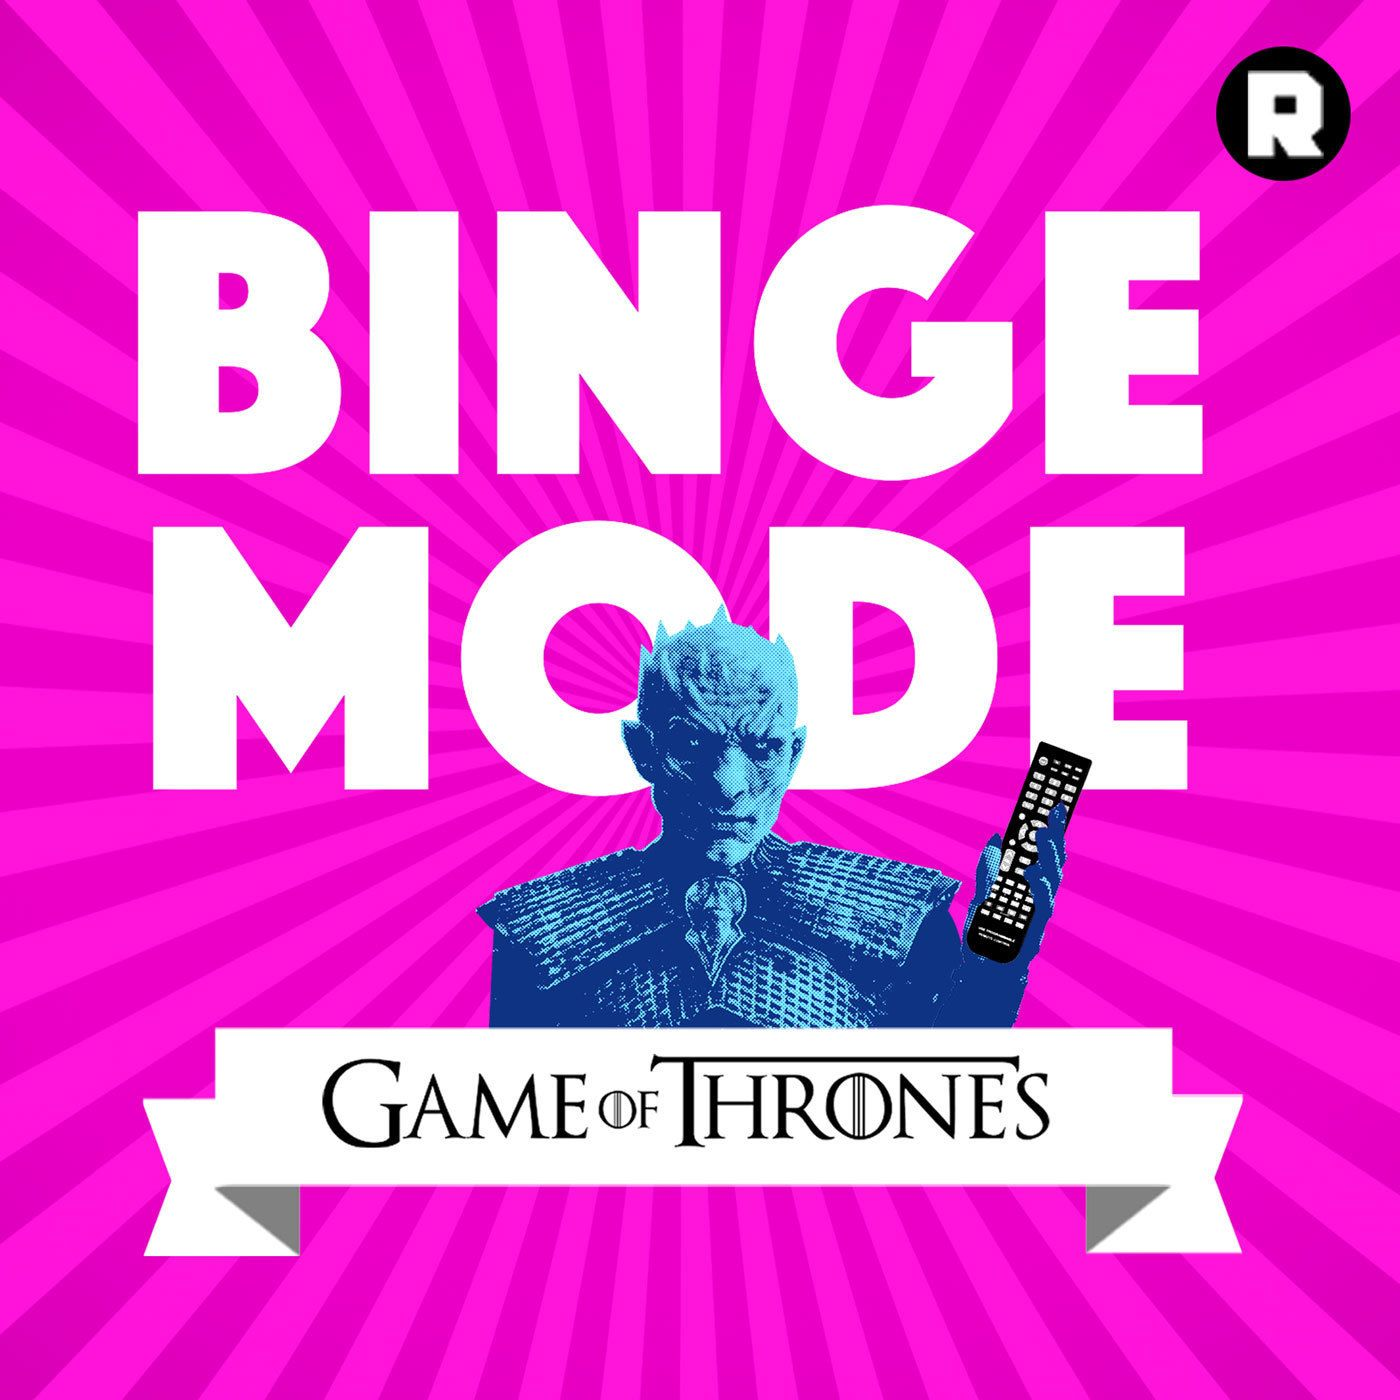 S1E2: The Kingsroad | Game of Thrones